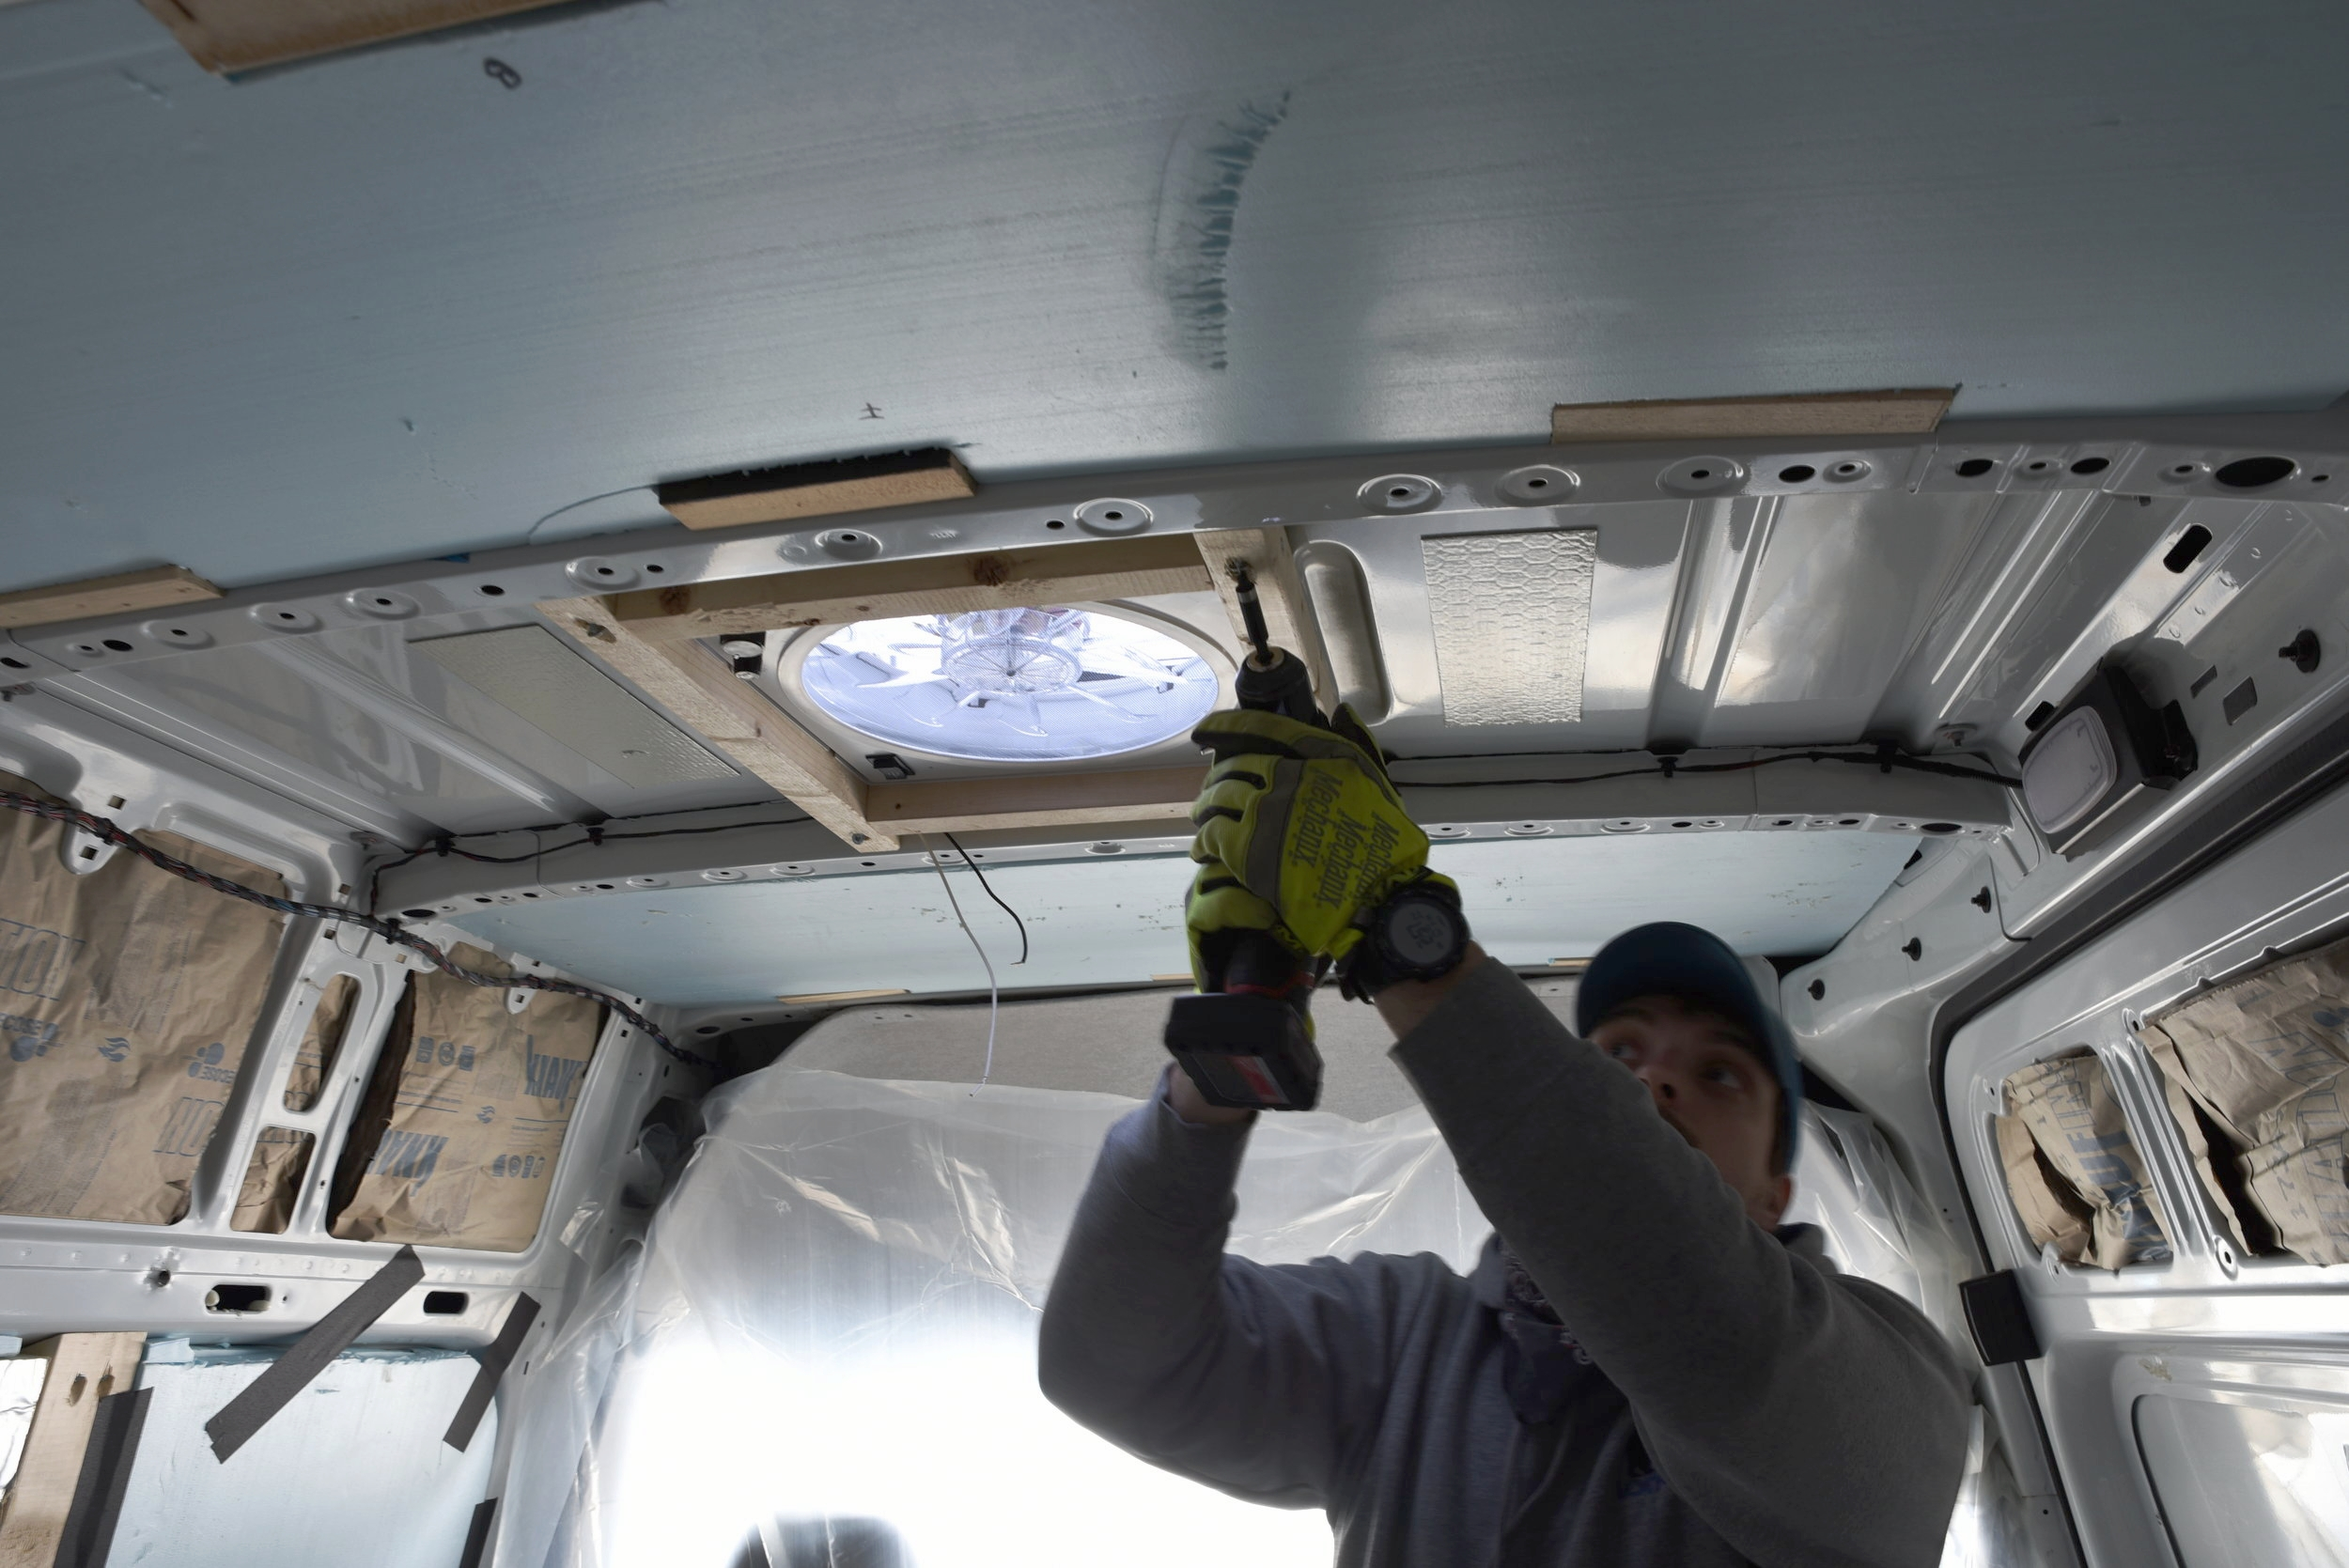 Ian screws the fan's frame into the ribs of the van roof.